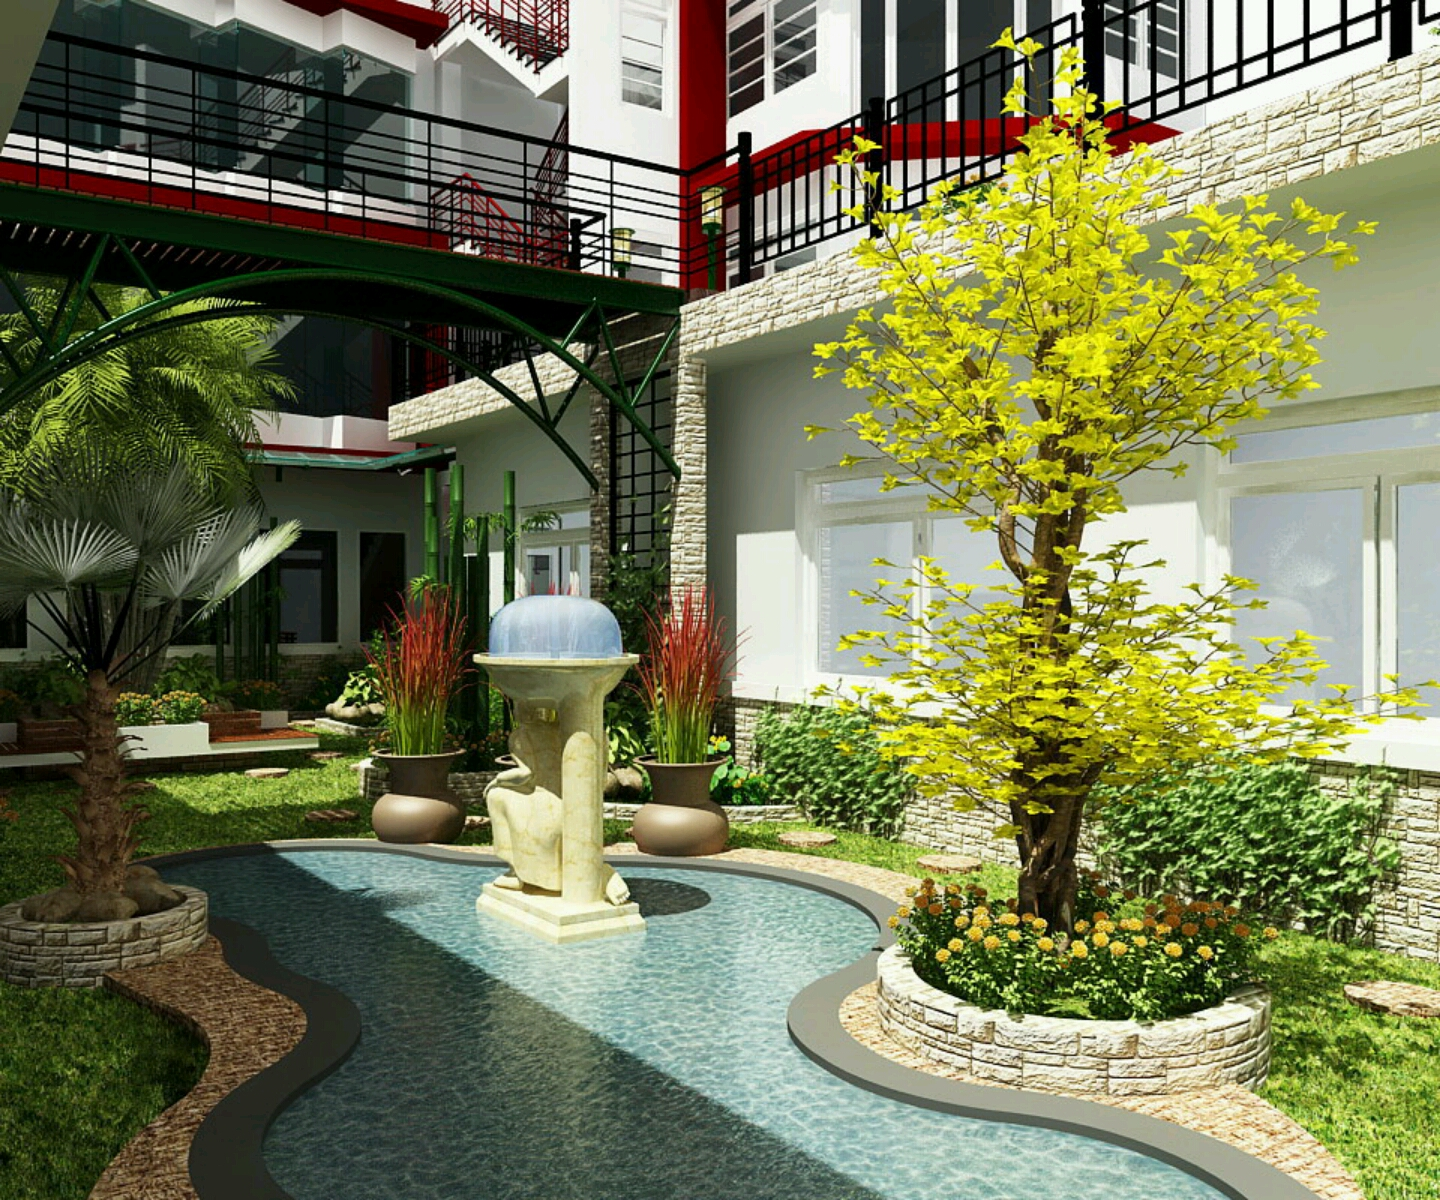 Home And Garden Design Ideas